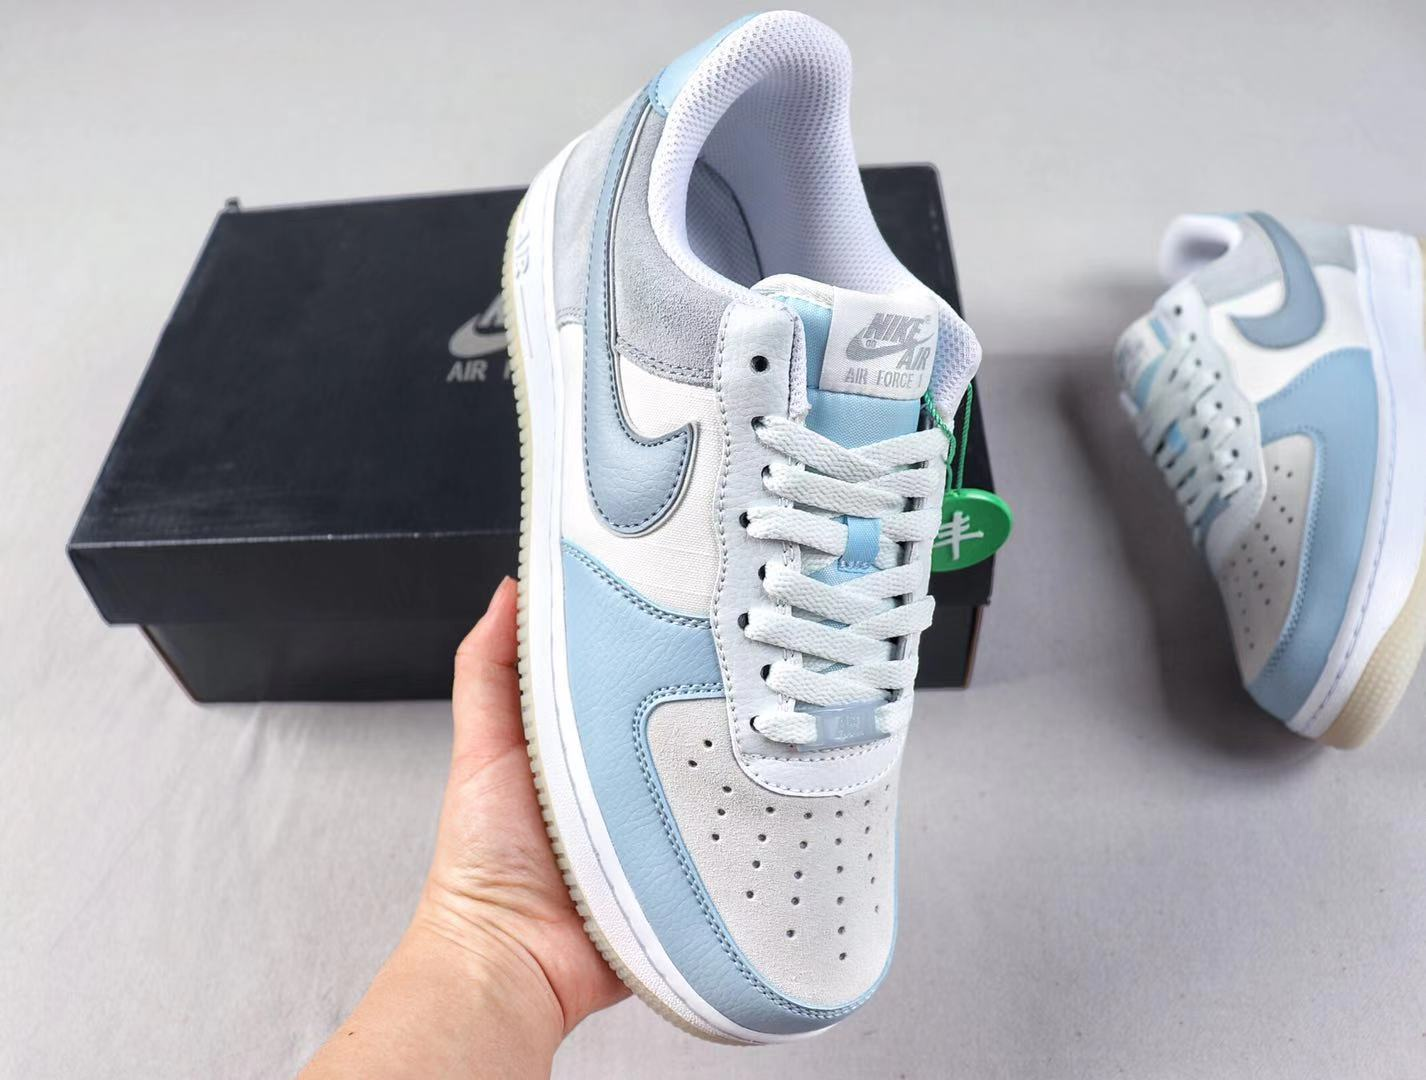 2019 Nike Air Force 1 Armory Blue/Obsidian Mist Top Shoes Hot Sale AO2425-400